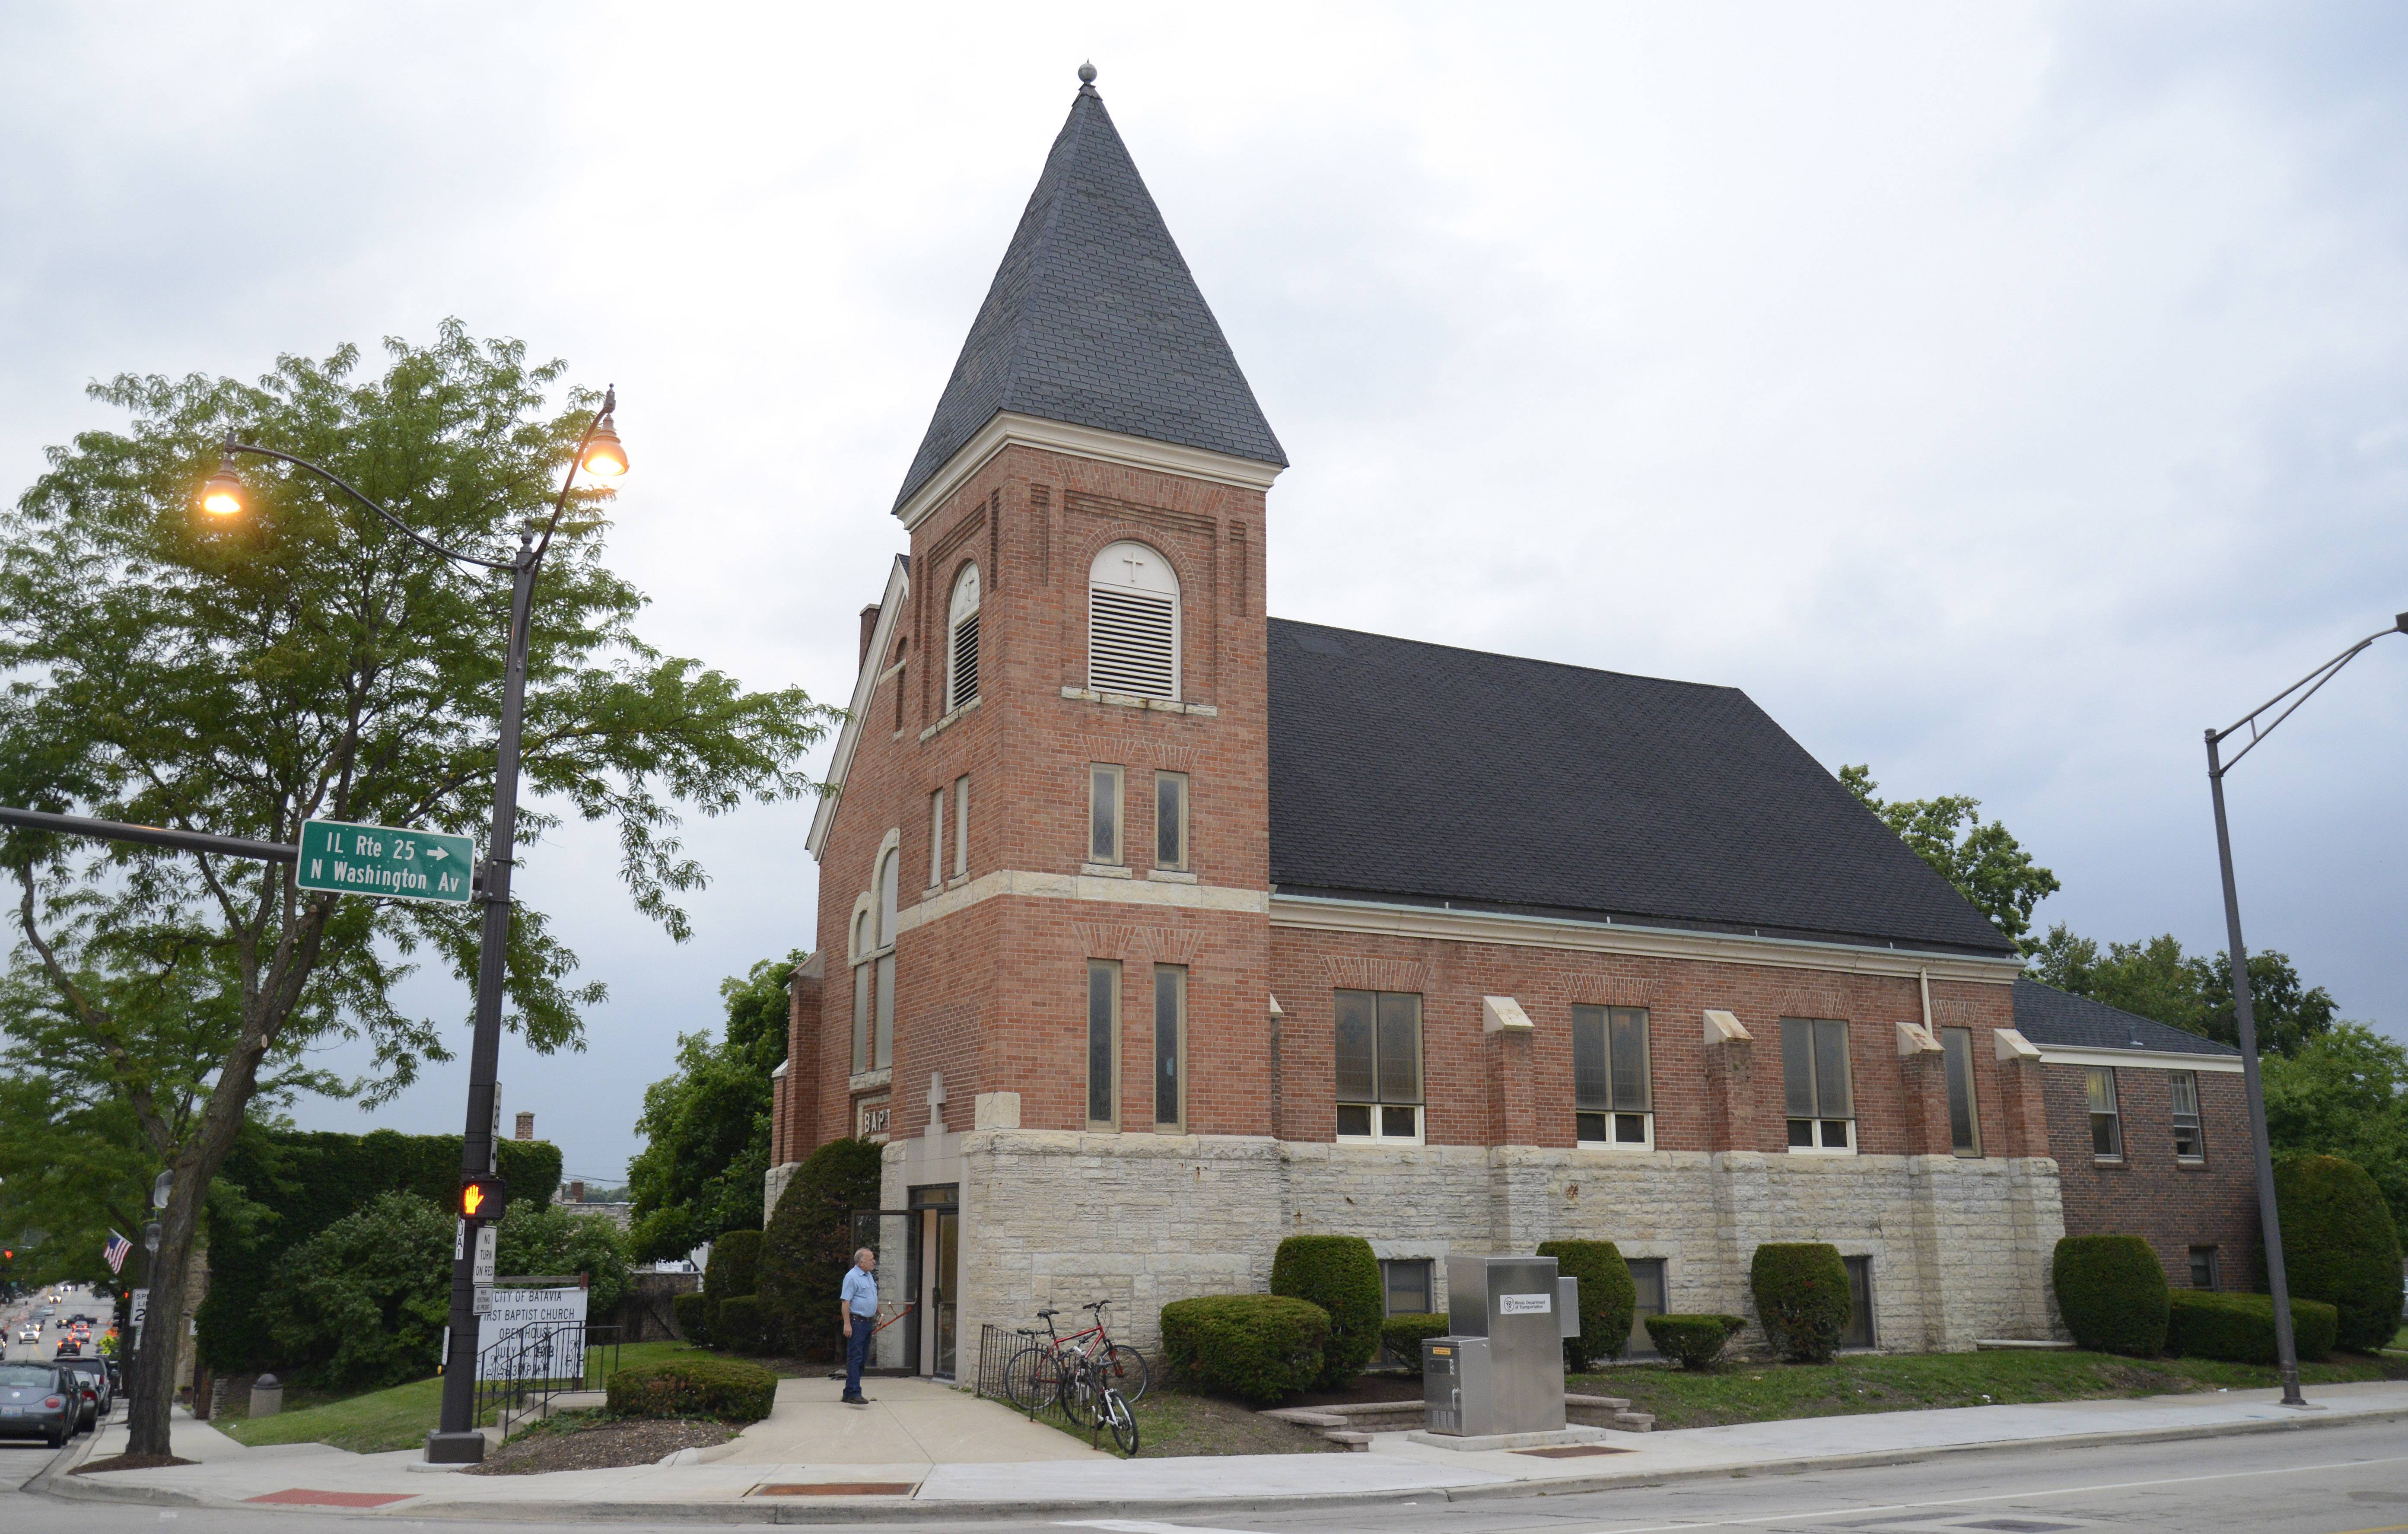 A tax-incentive district is being considered to prompt redevelopment of the former First Baptist Church property, and others nearby, at Route 25 and Wilson Street in Batavia.